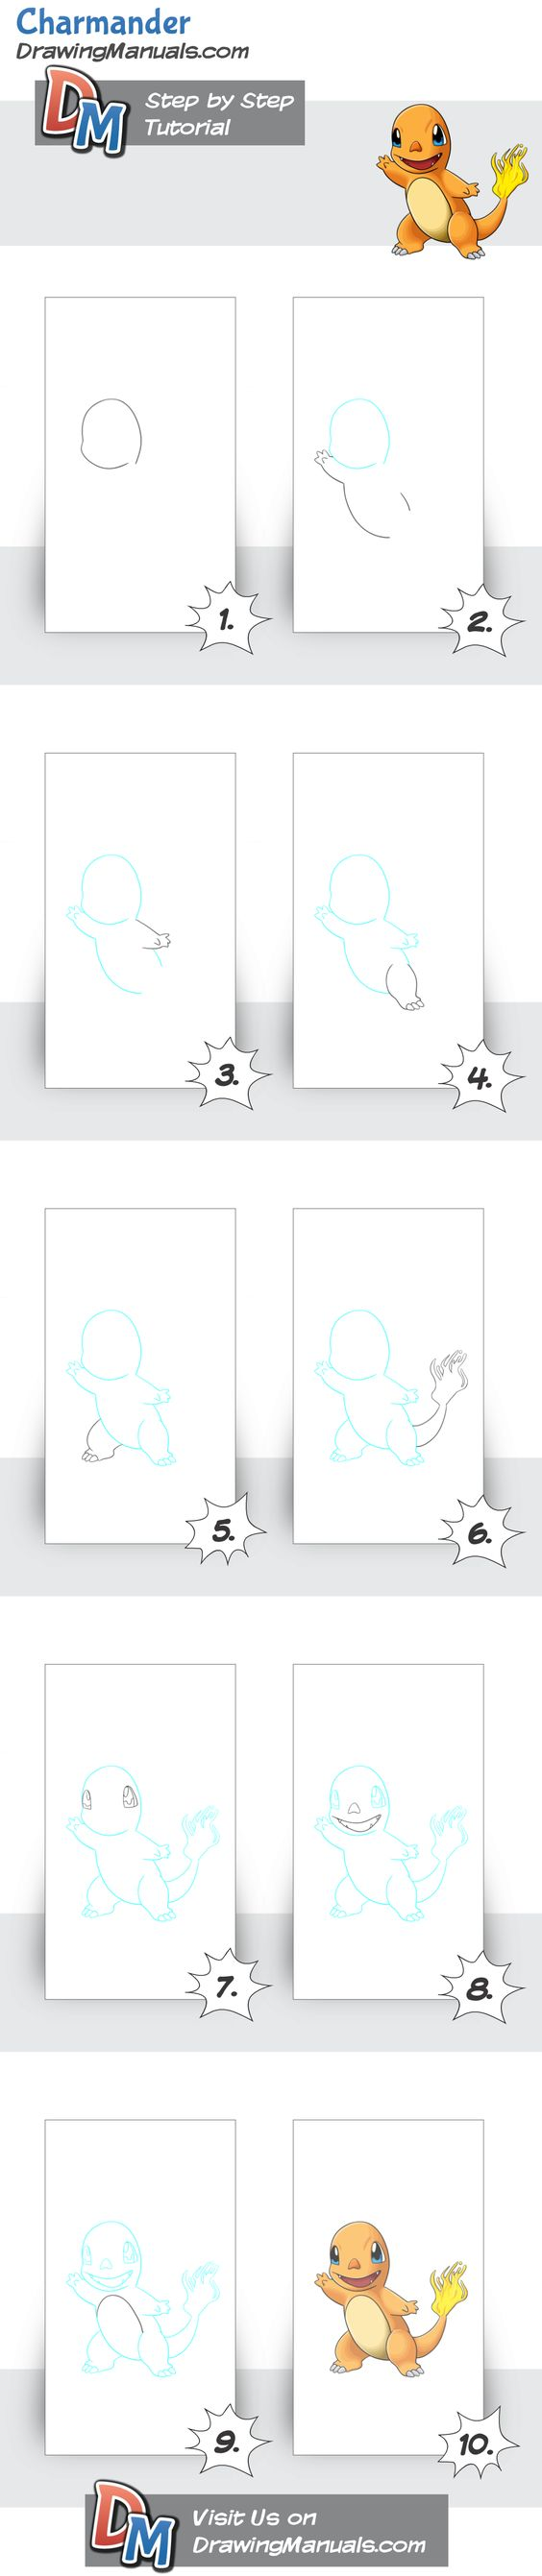 How to Draw Charmander-Pokemon, real easy step-by-step tutorial for all the beginners and kids... try it out it's super fun!  http://drawingmanuals.com/manual/how-to-draw-charmander-pokemon/